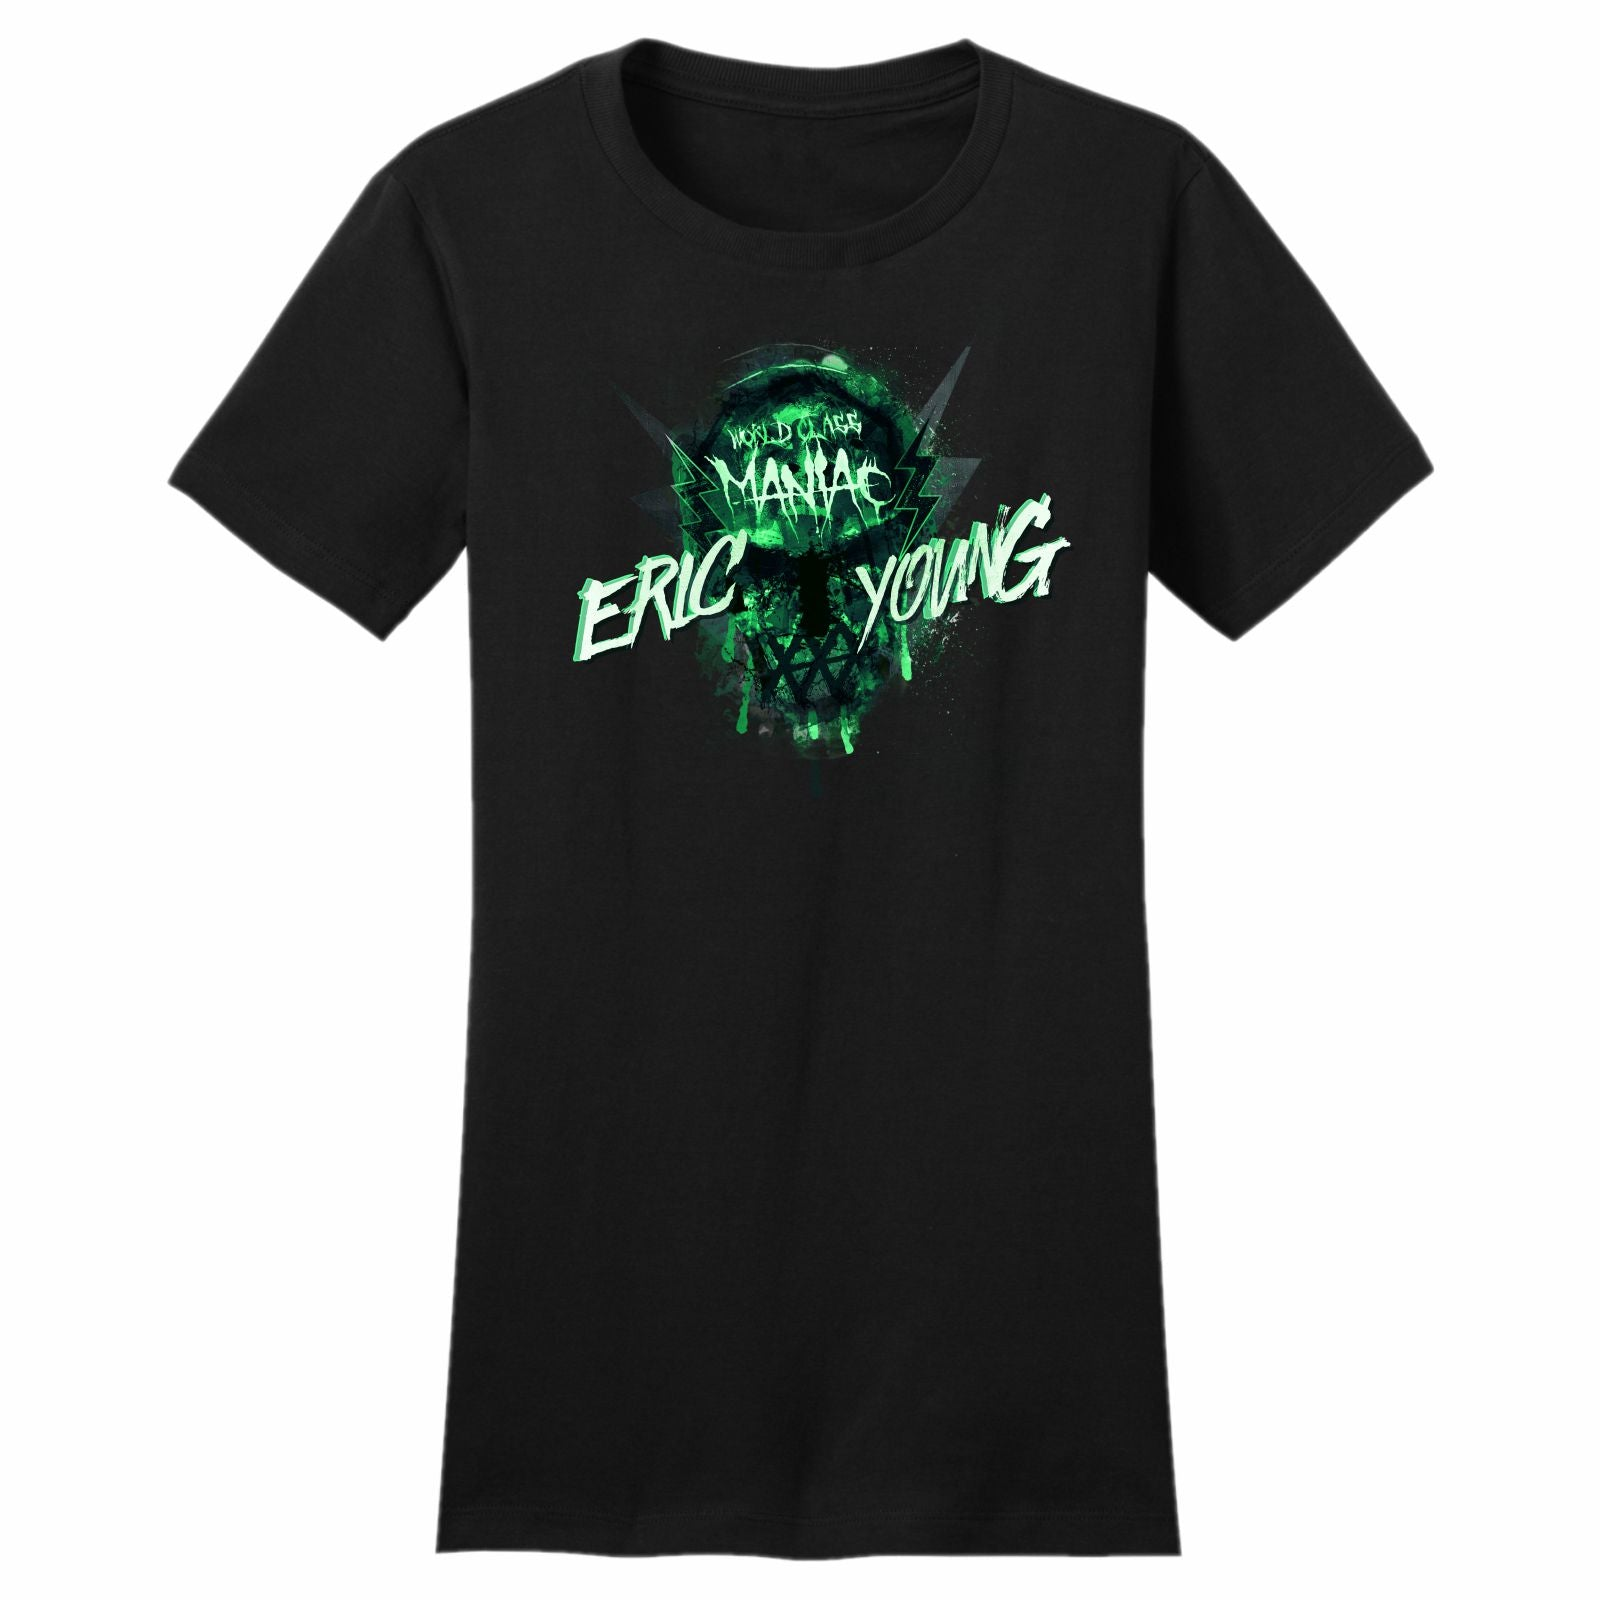 Maniac ERIC YOUNG Short Sleeve Tee - Military Green